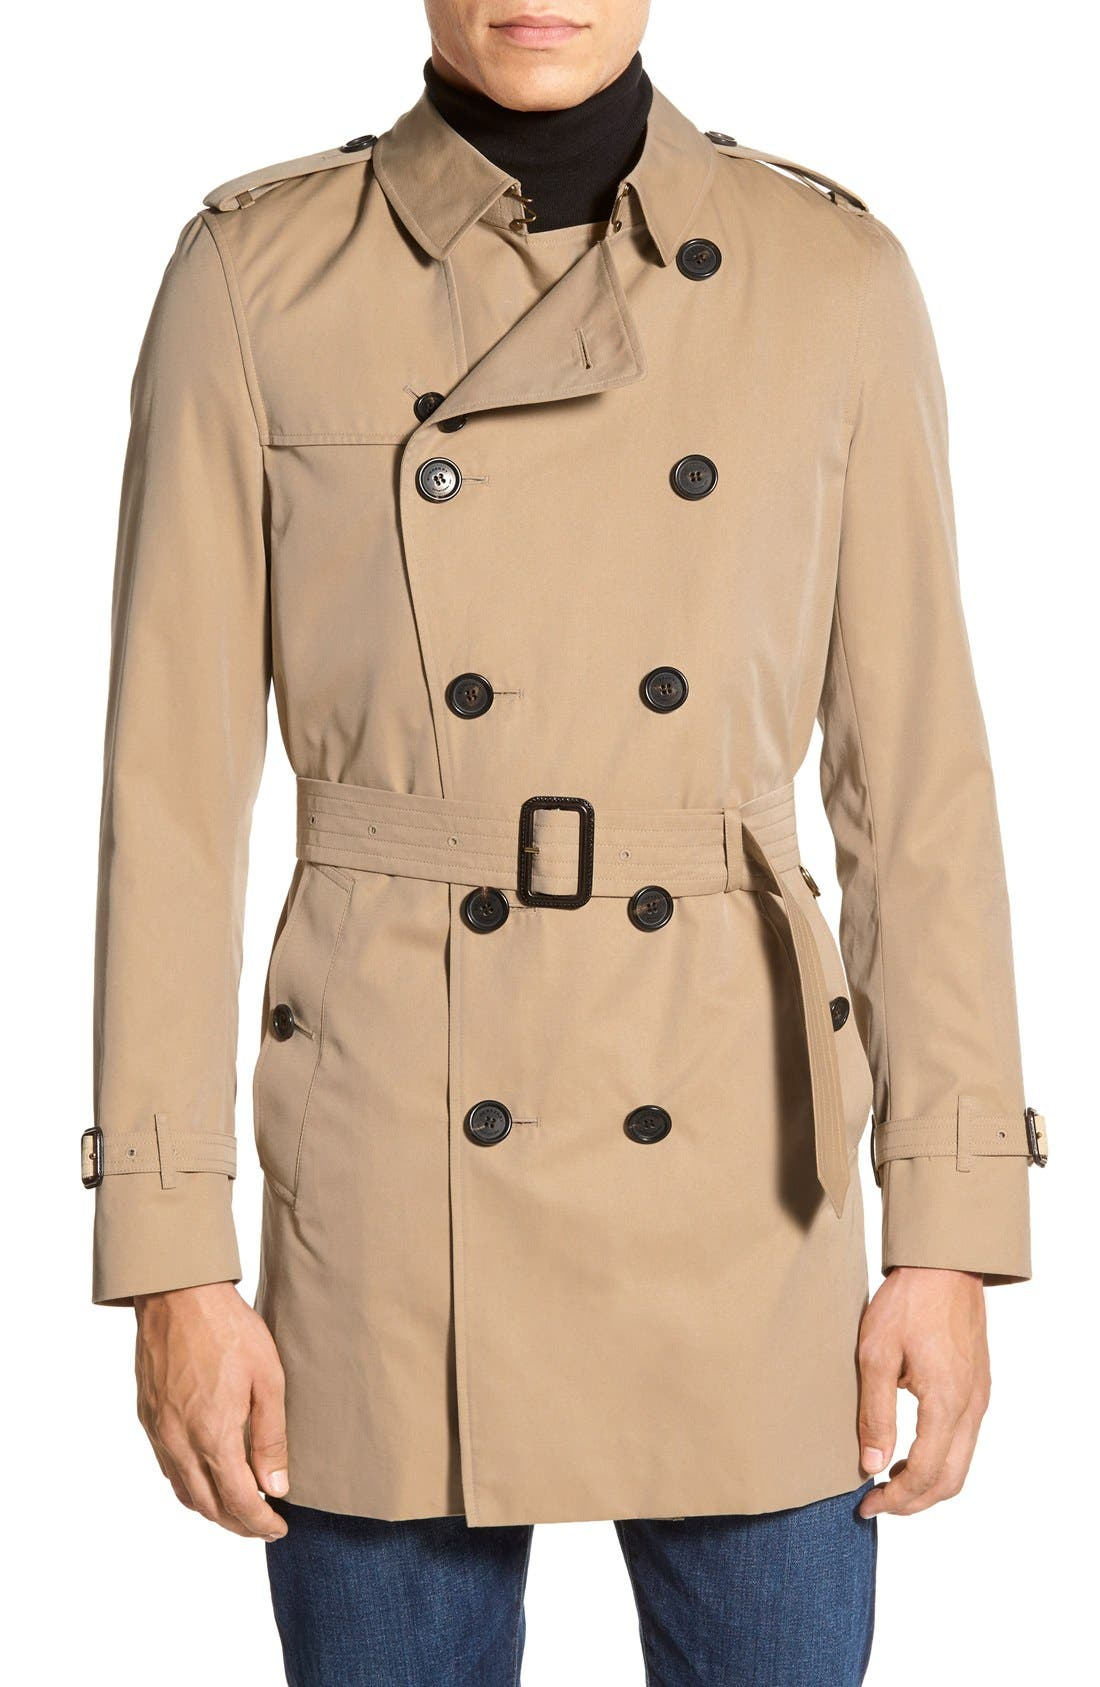 Alternate Image 1 Selected - Burberry Kensington Double Breasted Trench Coat (Regular & Big)